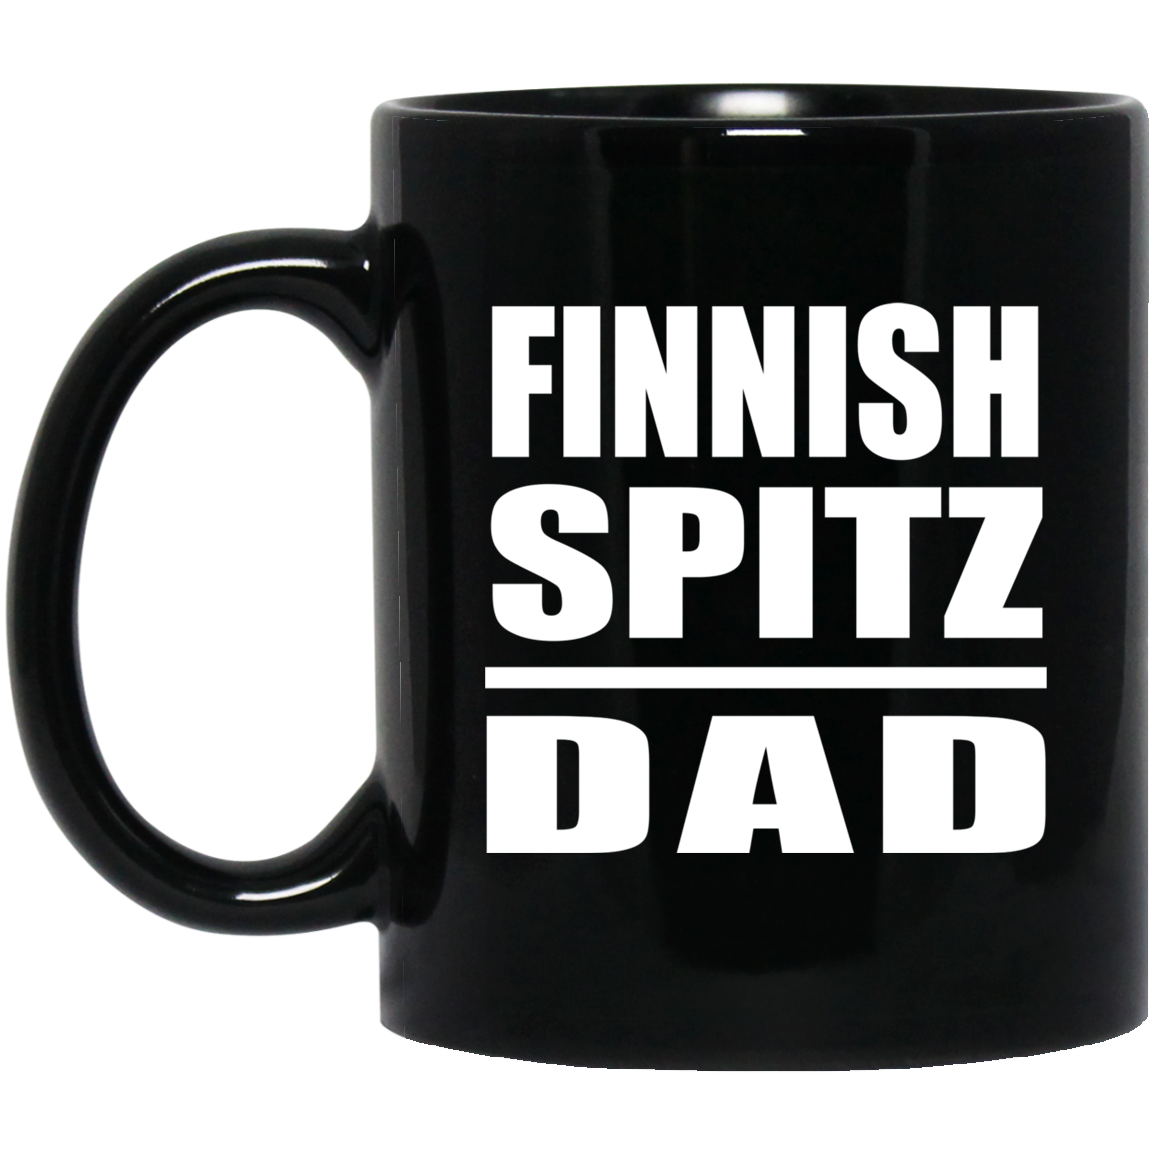 Finnish Spitz Dad - 11oz Coffee Mug